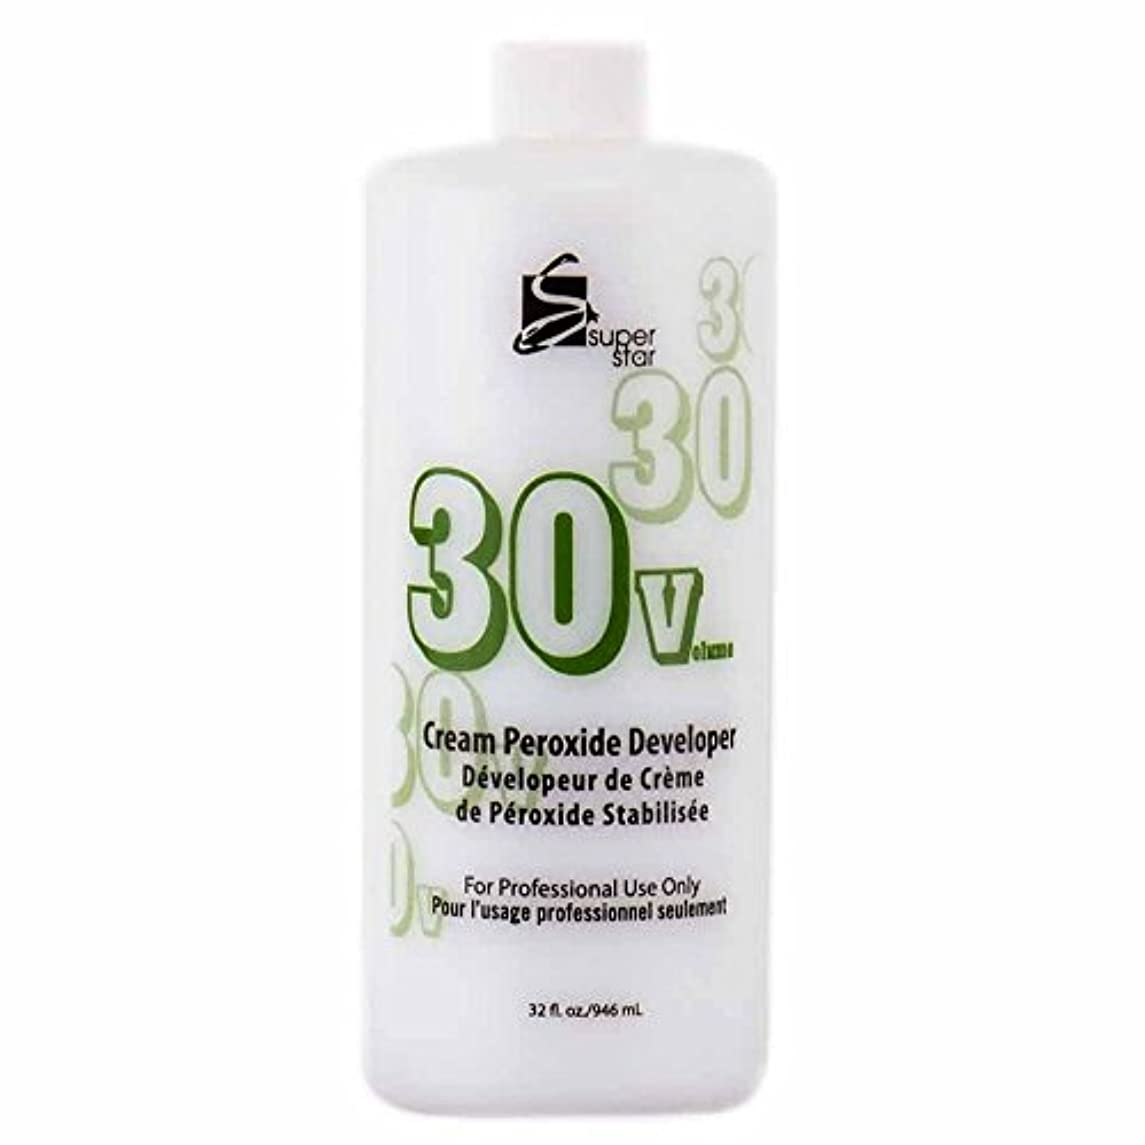 輝く相談鰐SUPER STAR Stabilized Cream Peroxide Developer 30V HC-50303 by Superstar